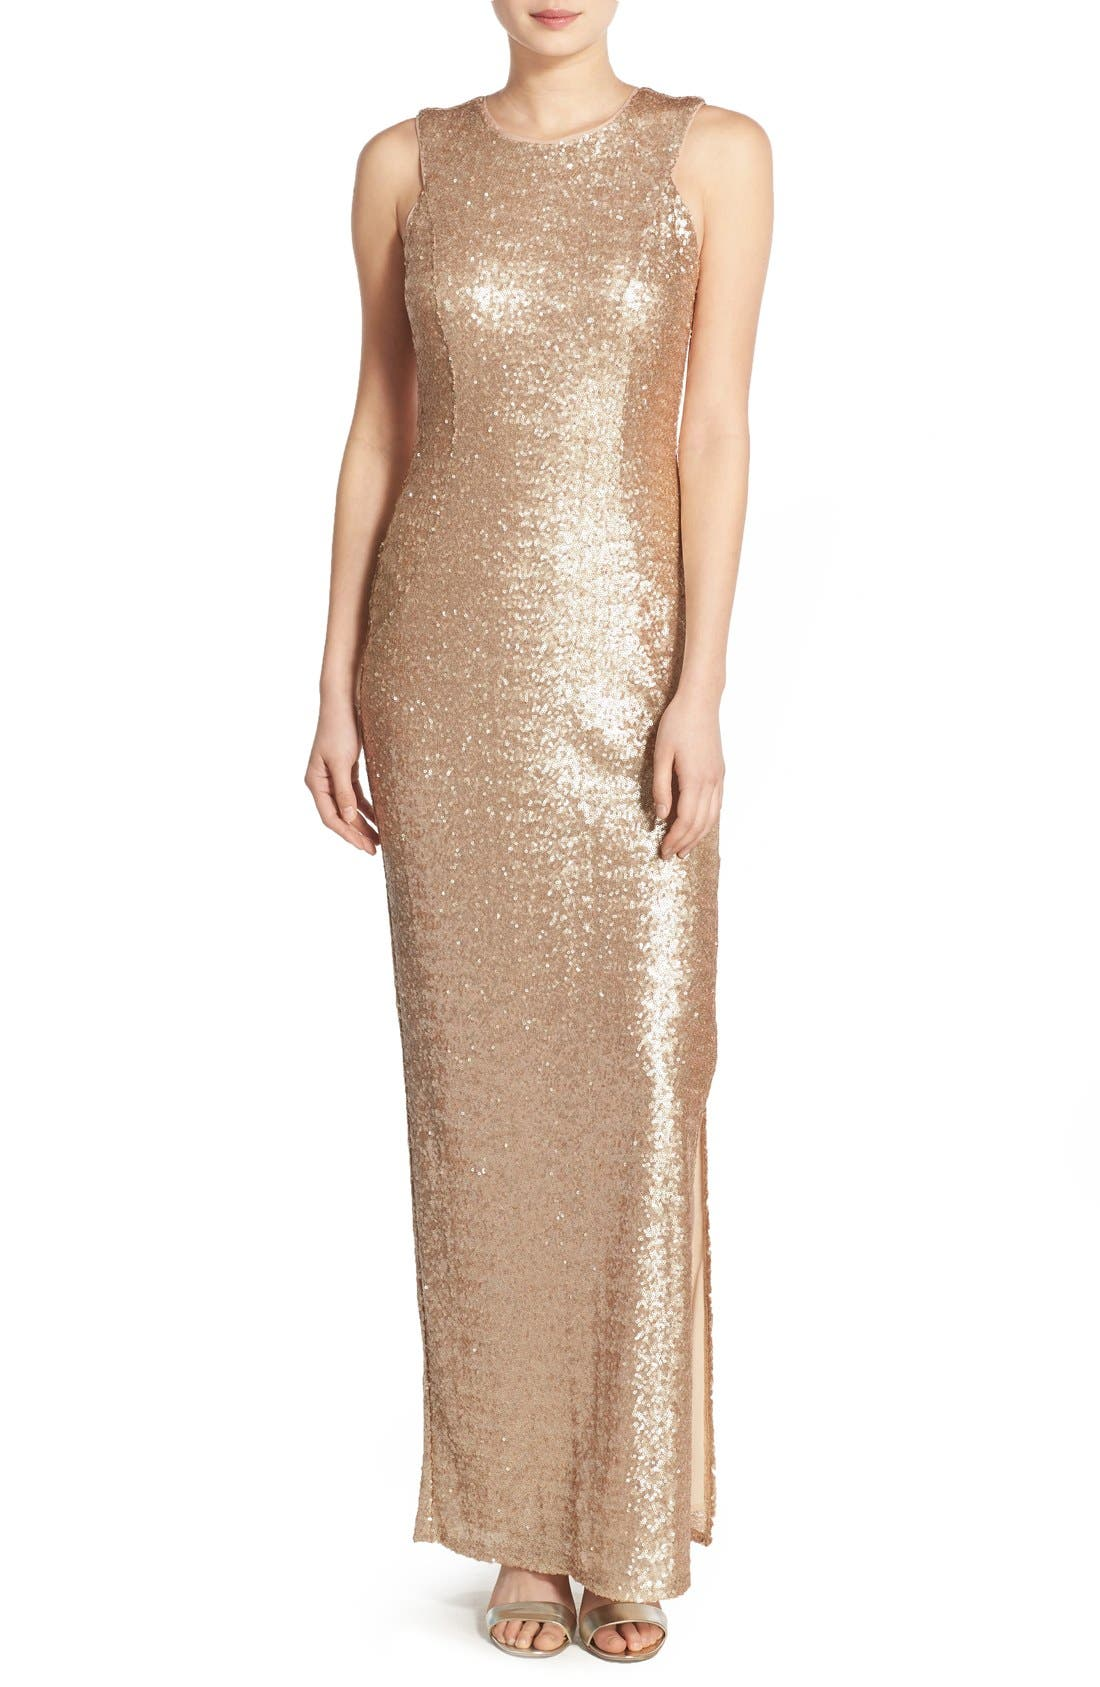 Alternate Image 1 Selected - Love, Nickie Lew Sequin Sleeveless Gown